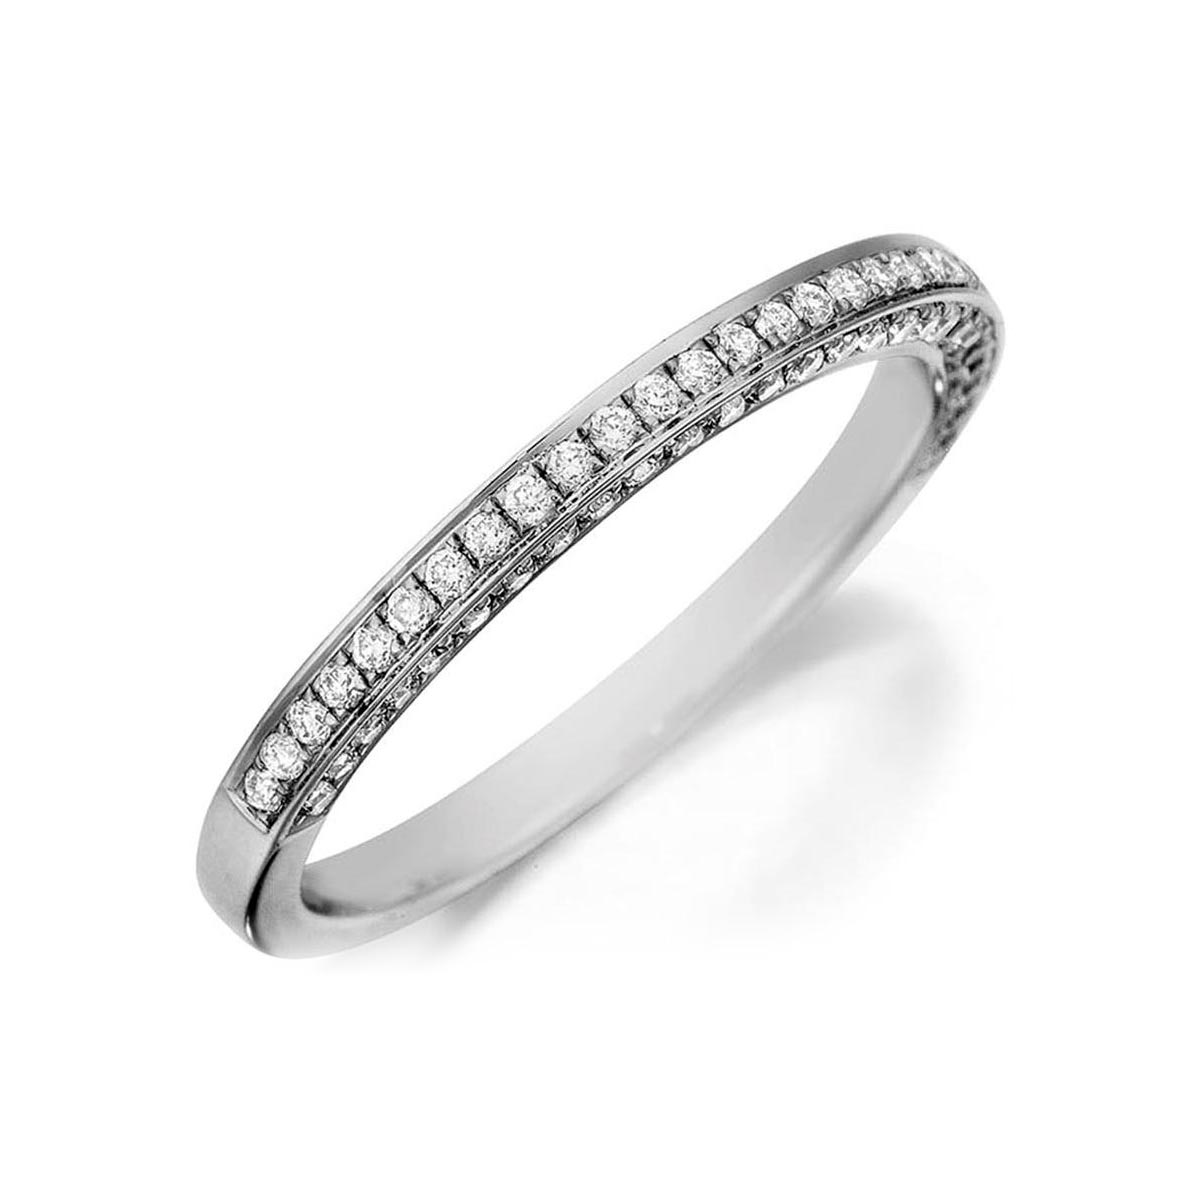 Henri Daussi 14 Karat White Gold Three Sided Diamond Wedding Band